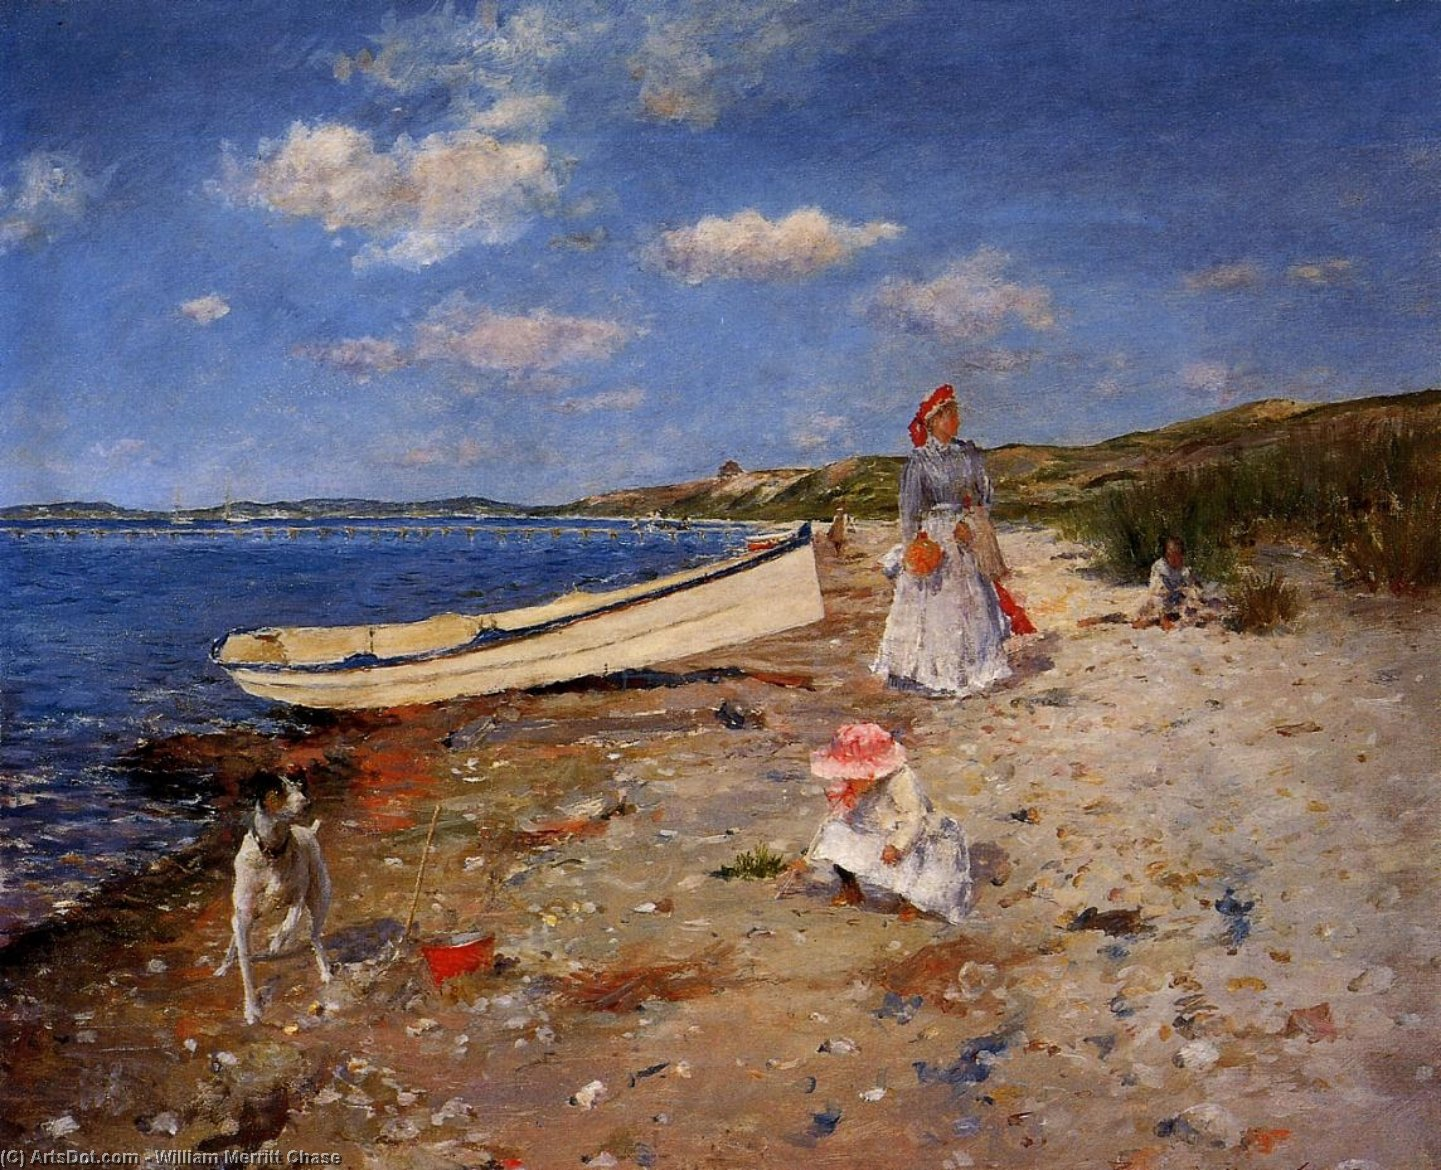 A Sunny Day in Shinnecock Bay, öl auf leinwand von William Merritt Chase (1849-1916, United States)